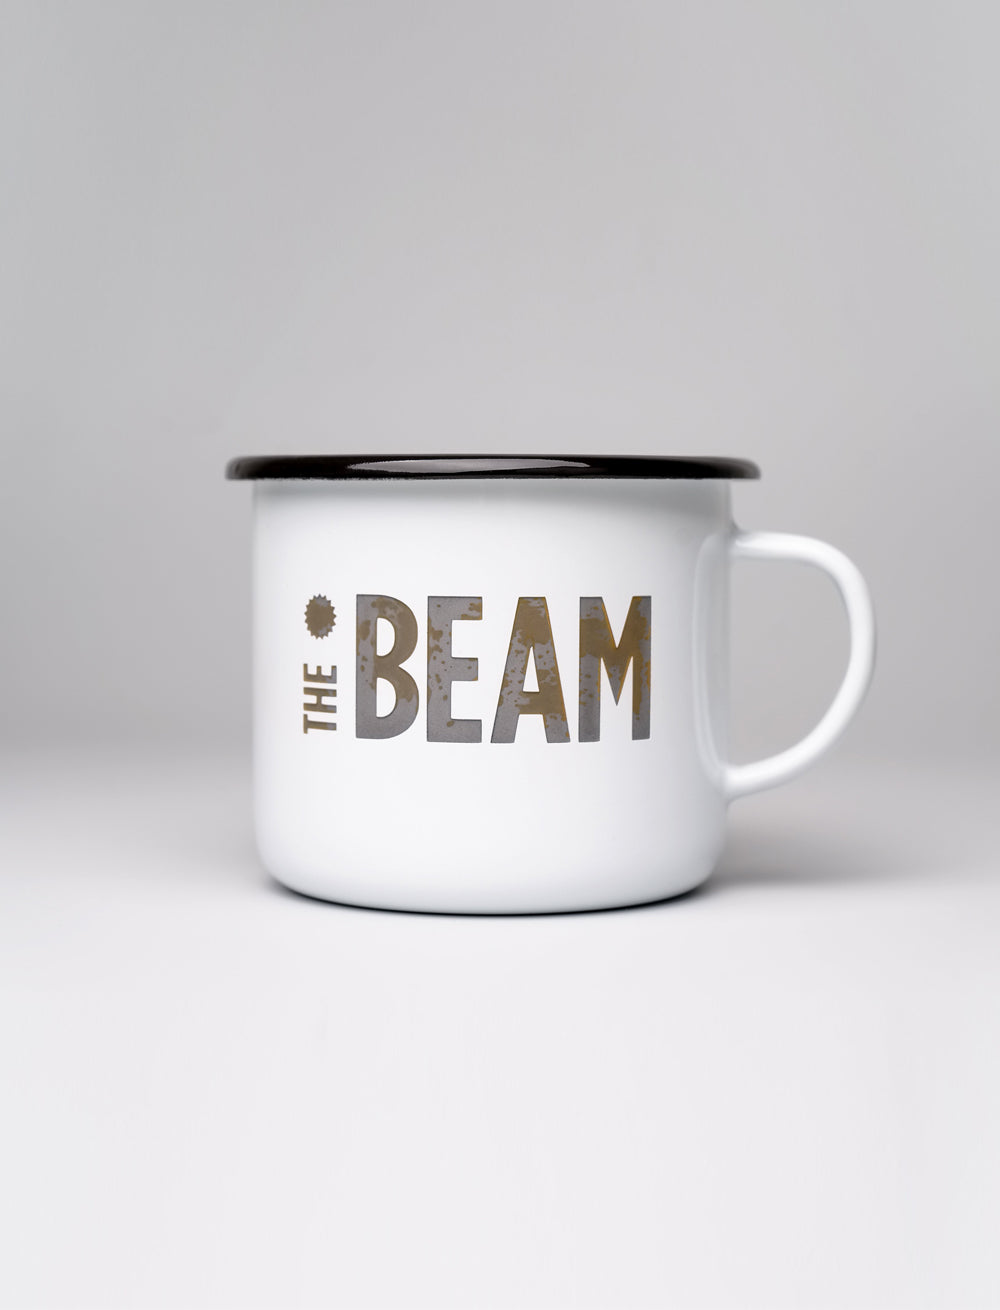 The Beam Coffee Mugs